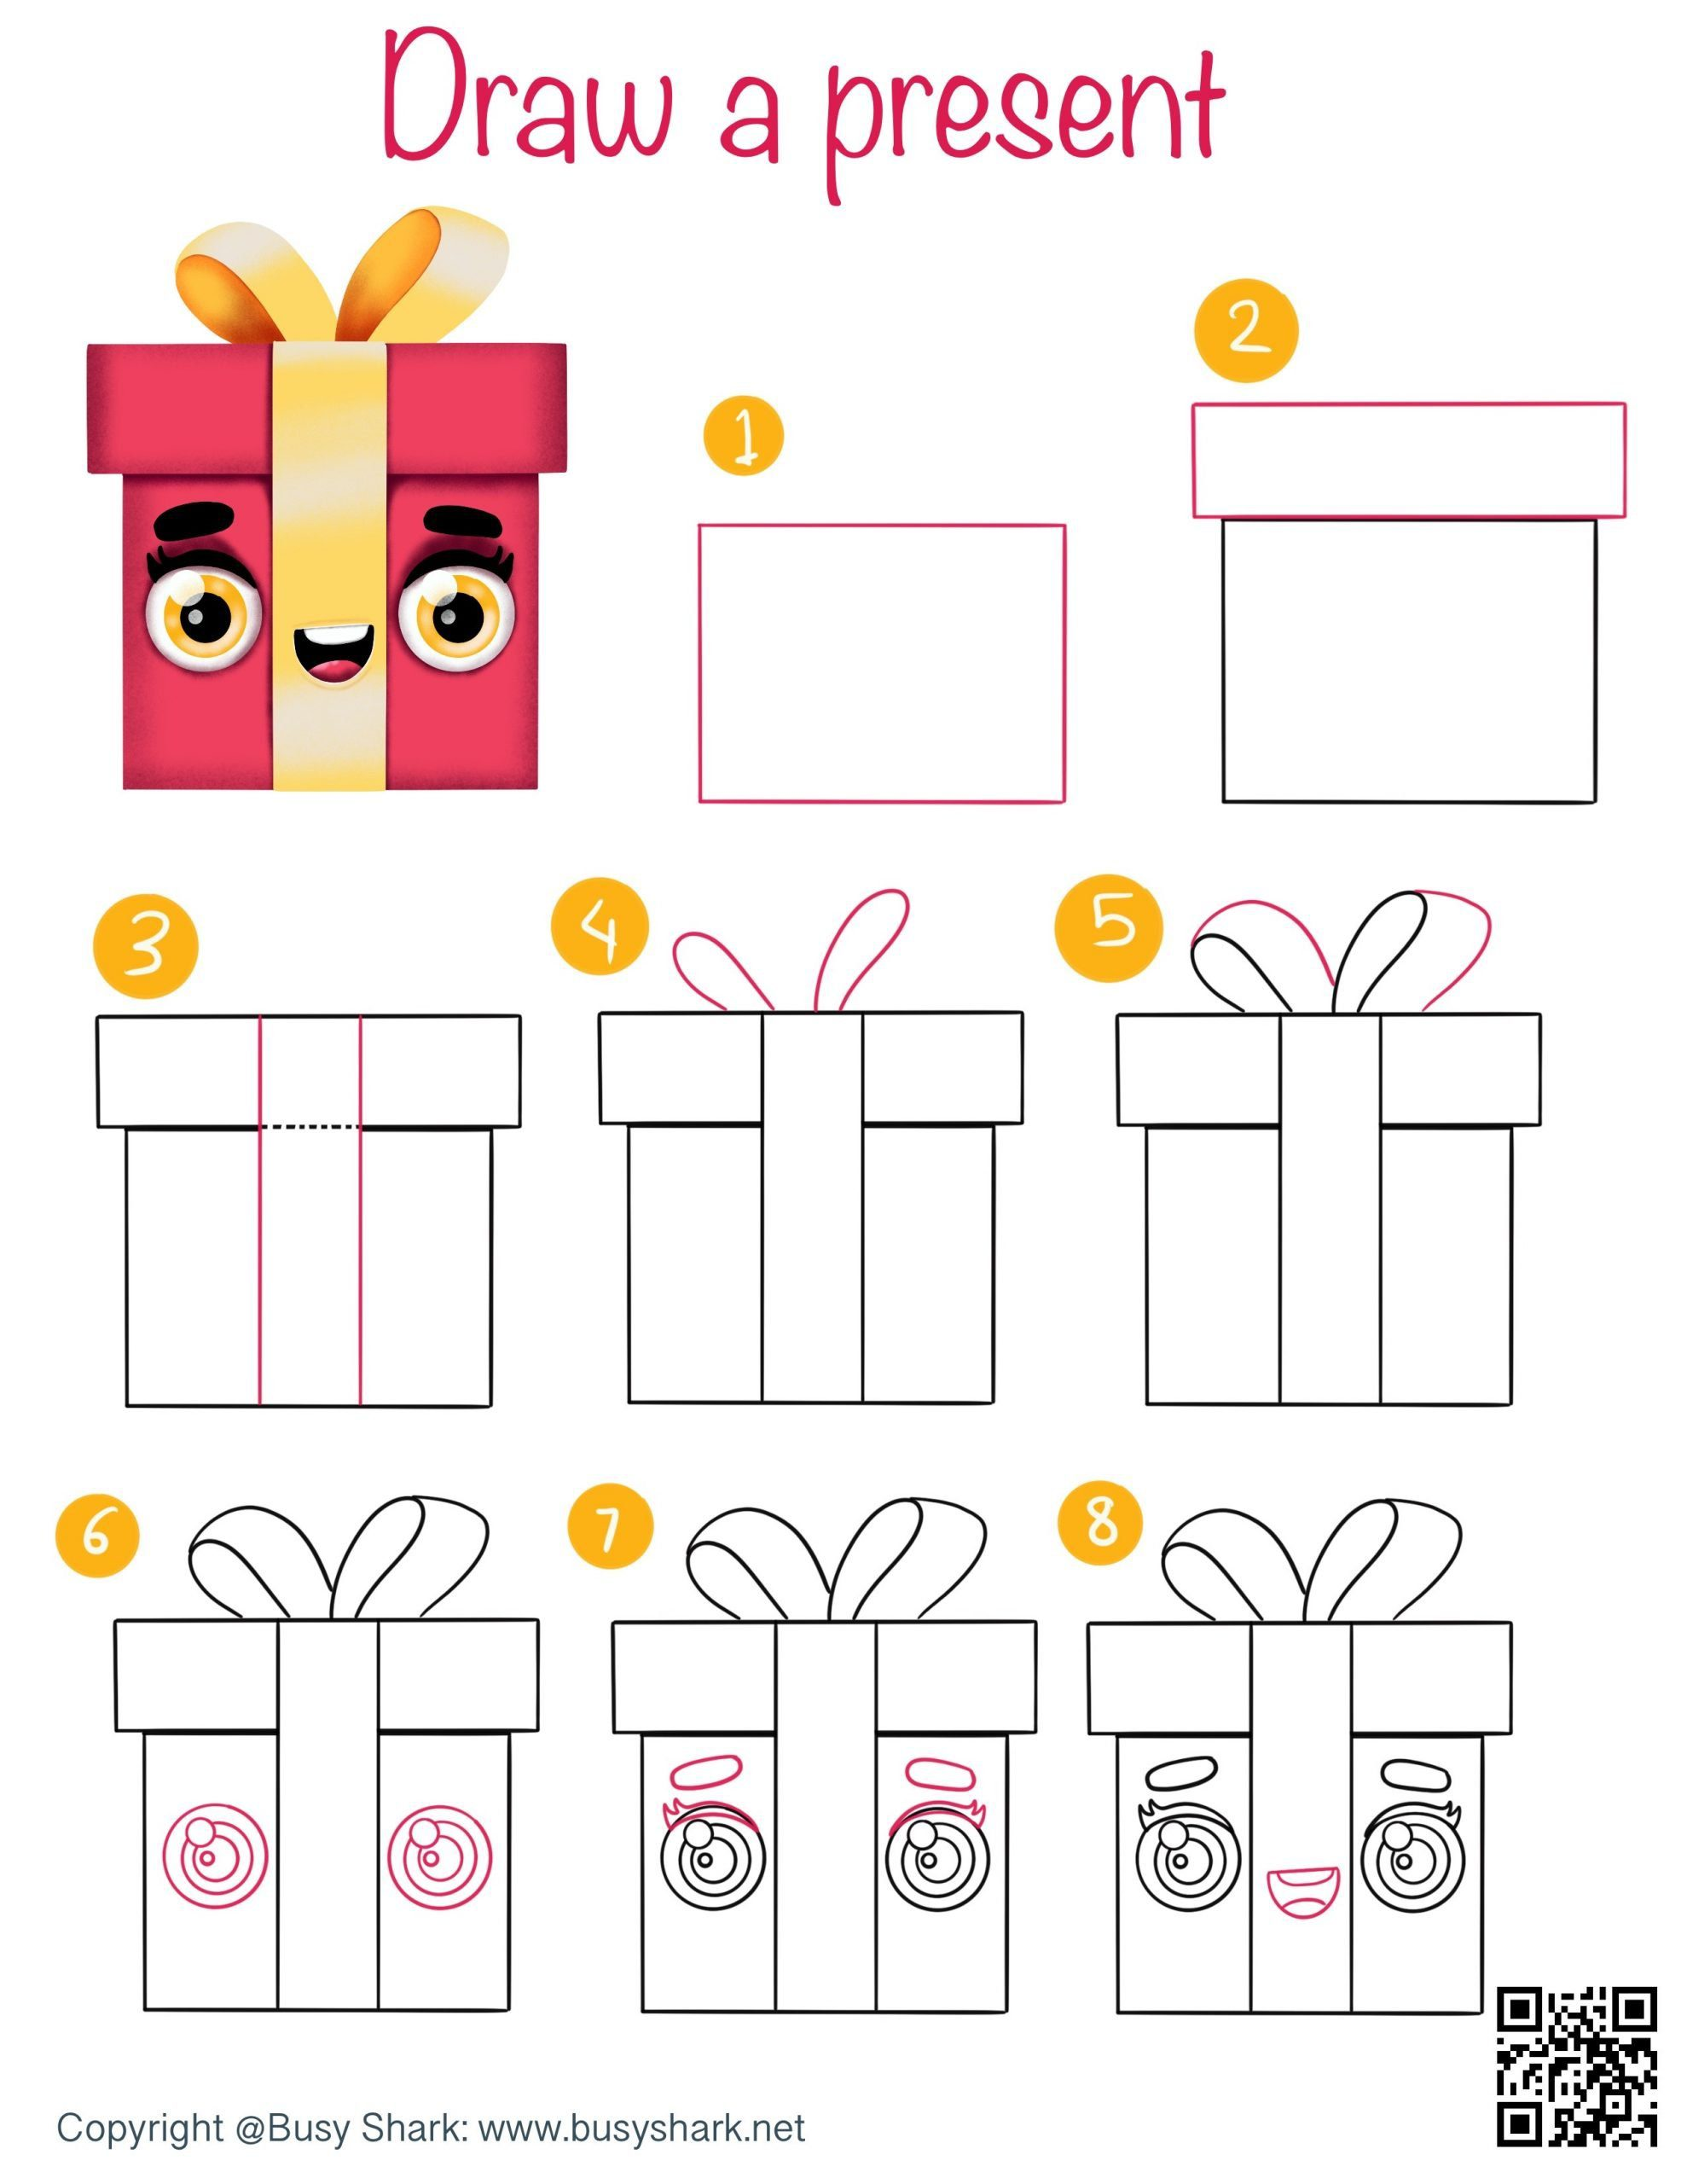 How to draw a present directed drawing step by step tutorial , simple cartoon drawing